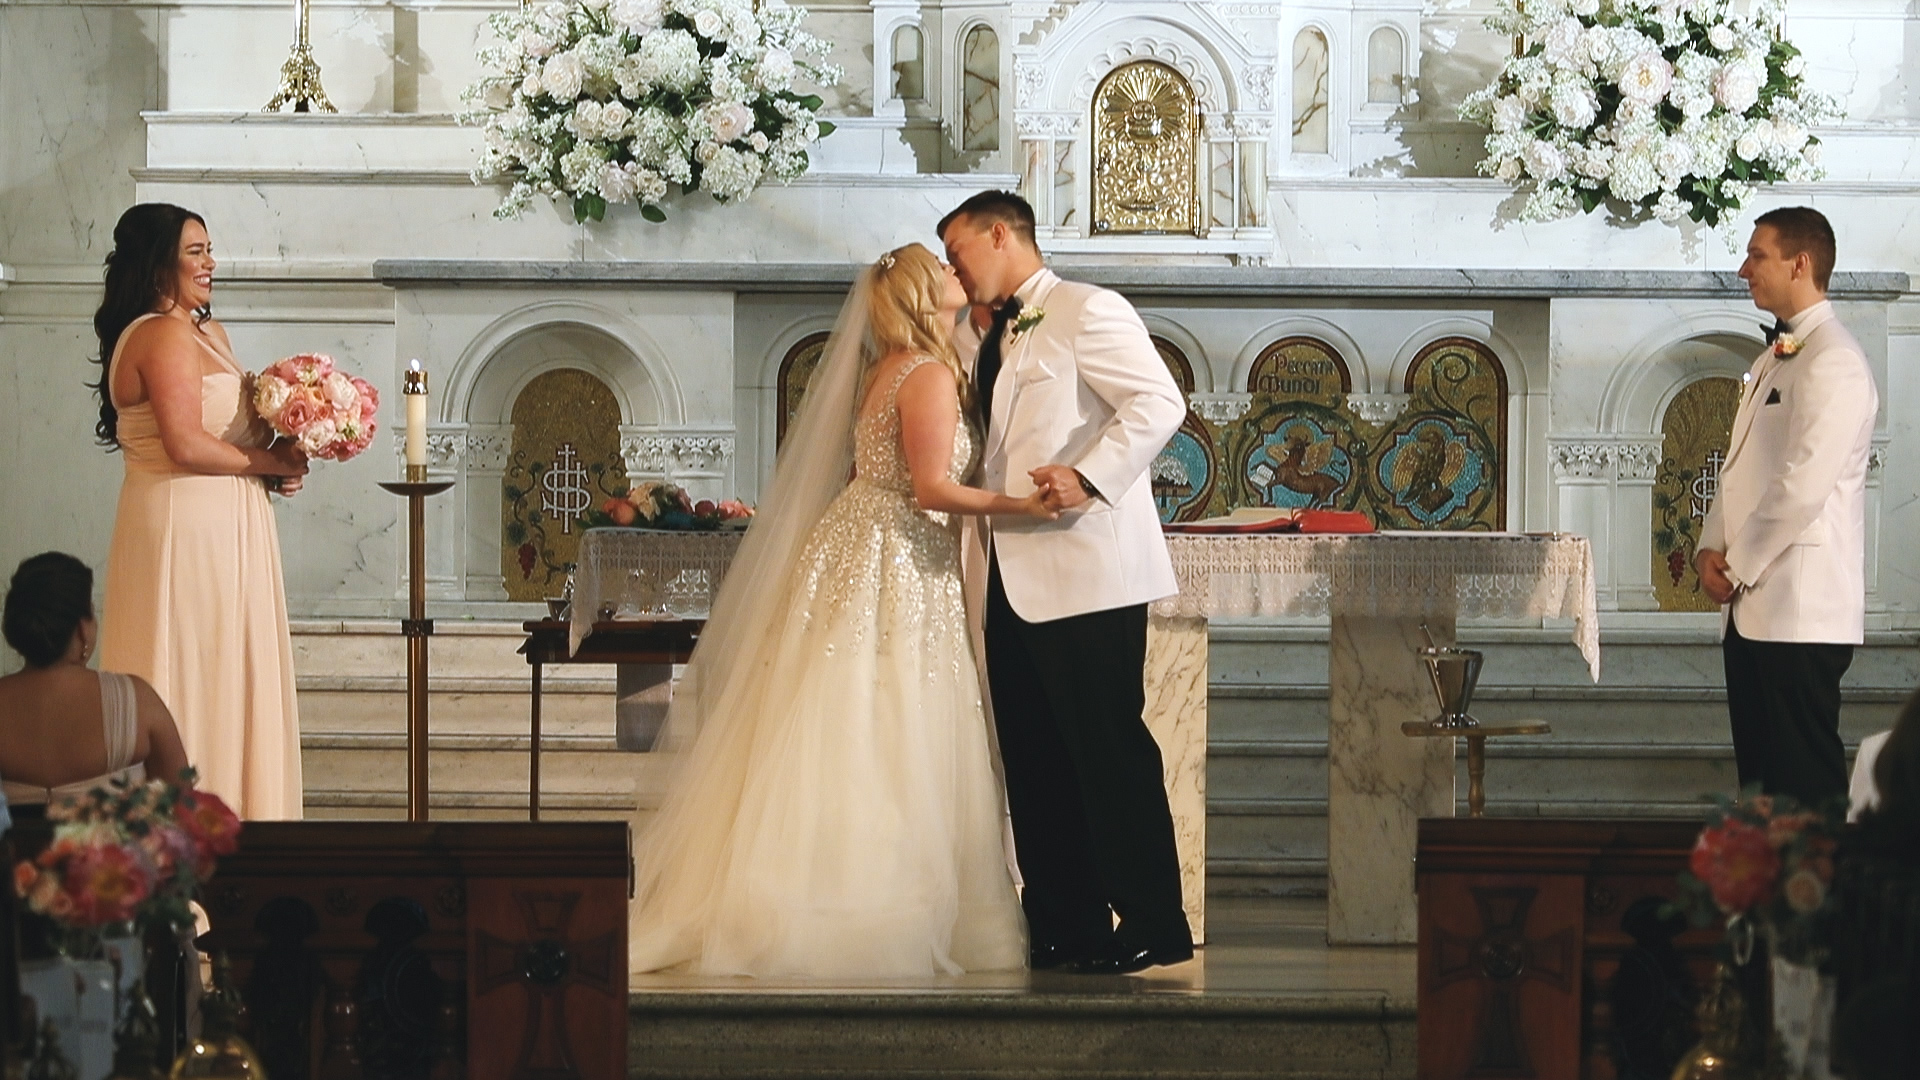 St. Joseph's Church - Bride Film